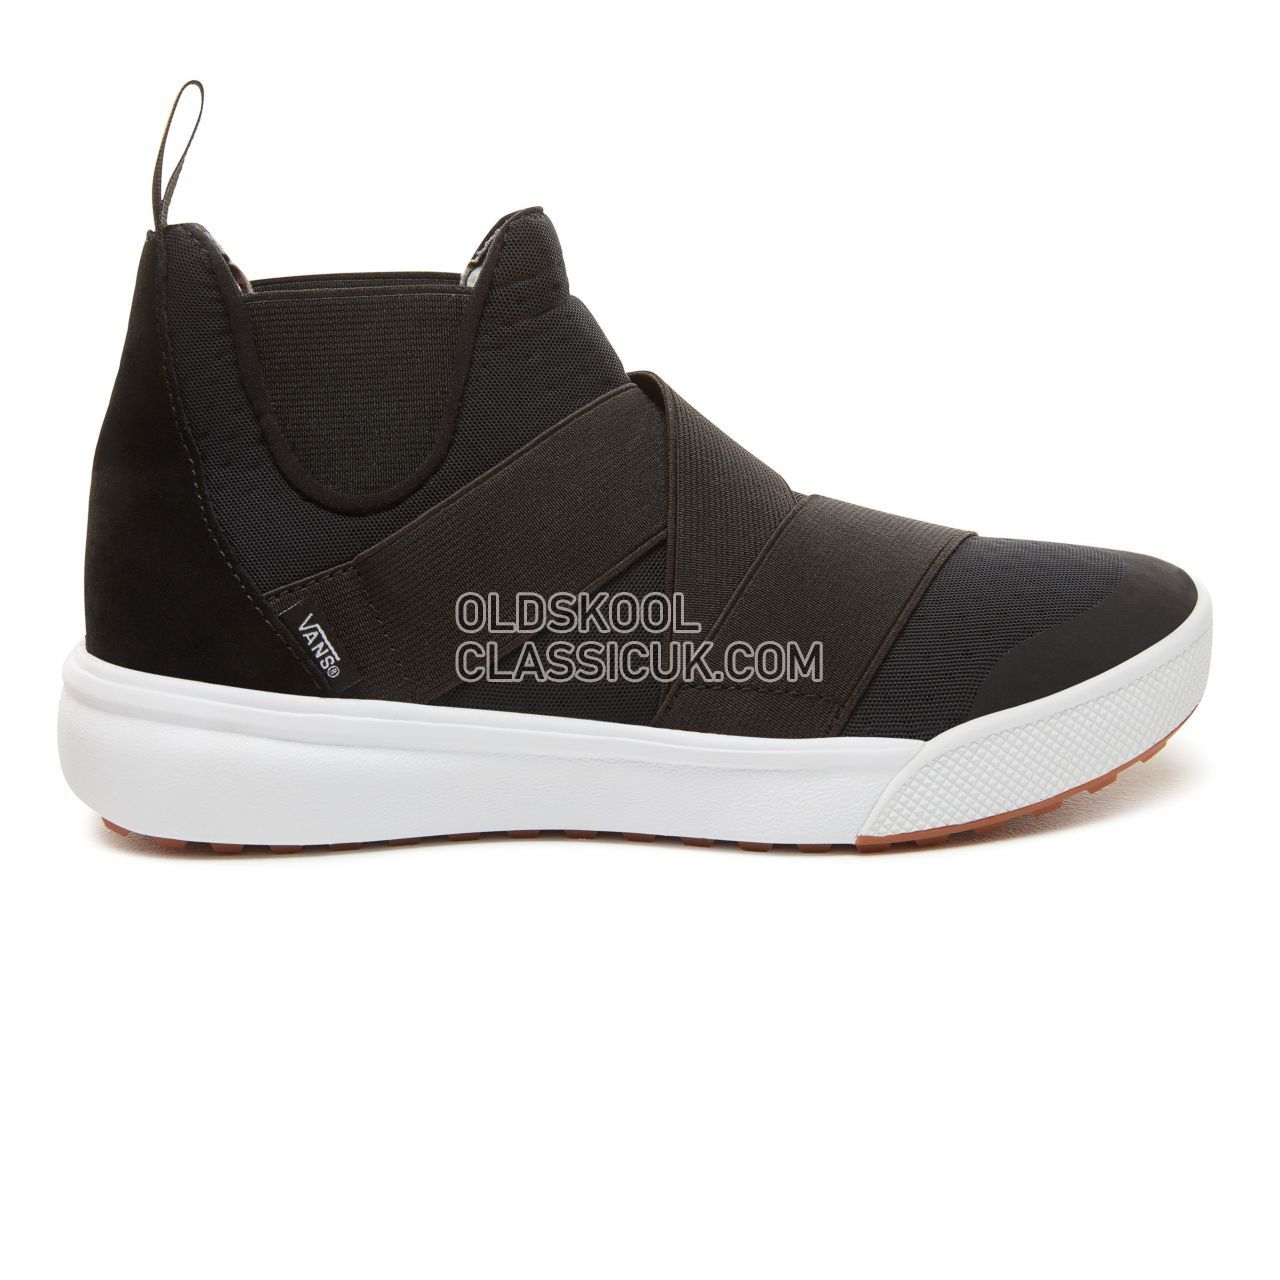 Vans UltraRange Gore Hi Sneakers Womens Black VN0A3TKXBLK Shoes